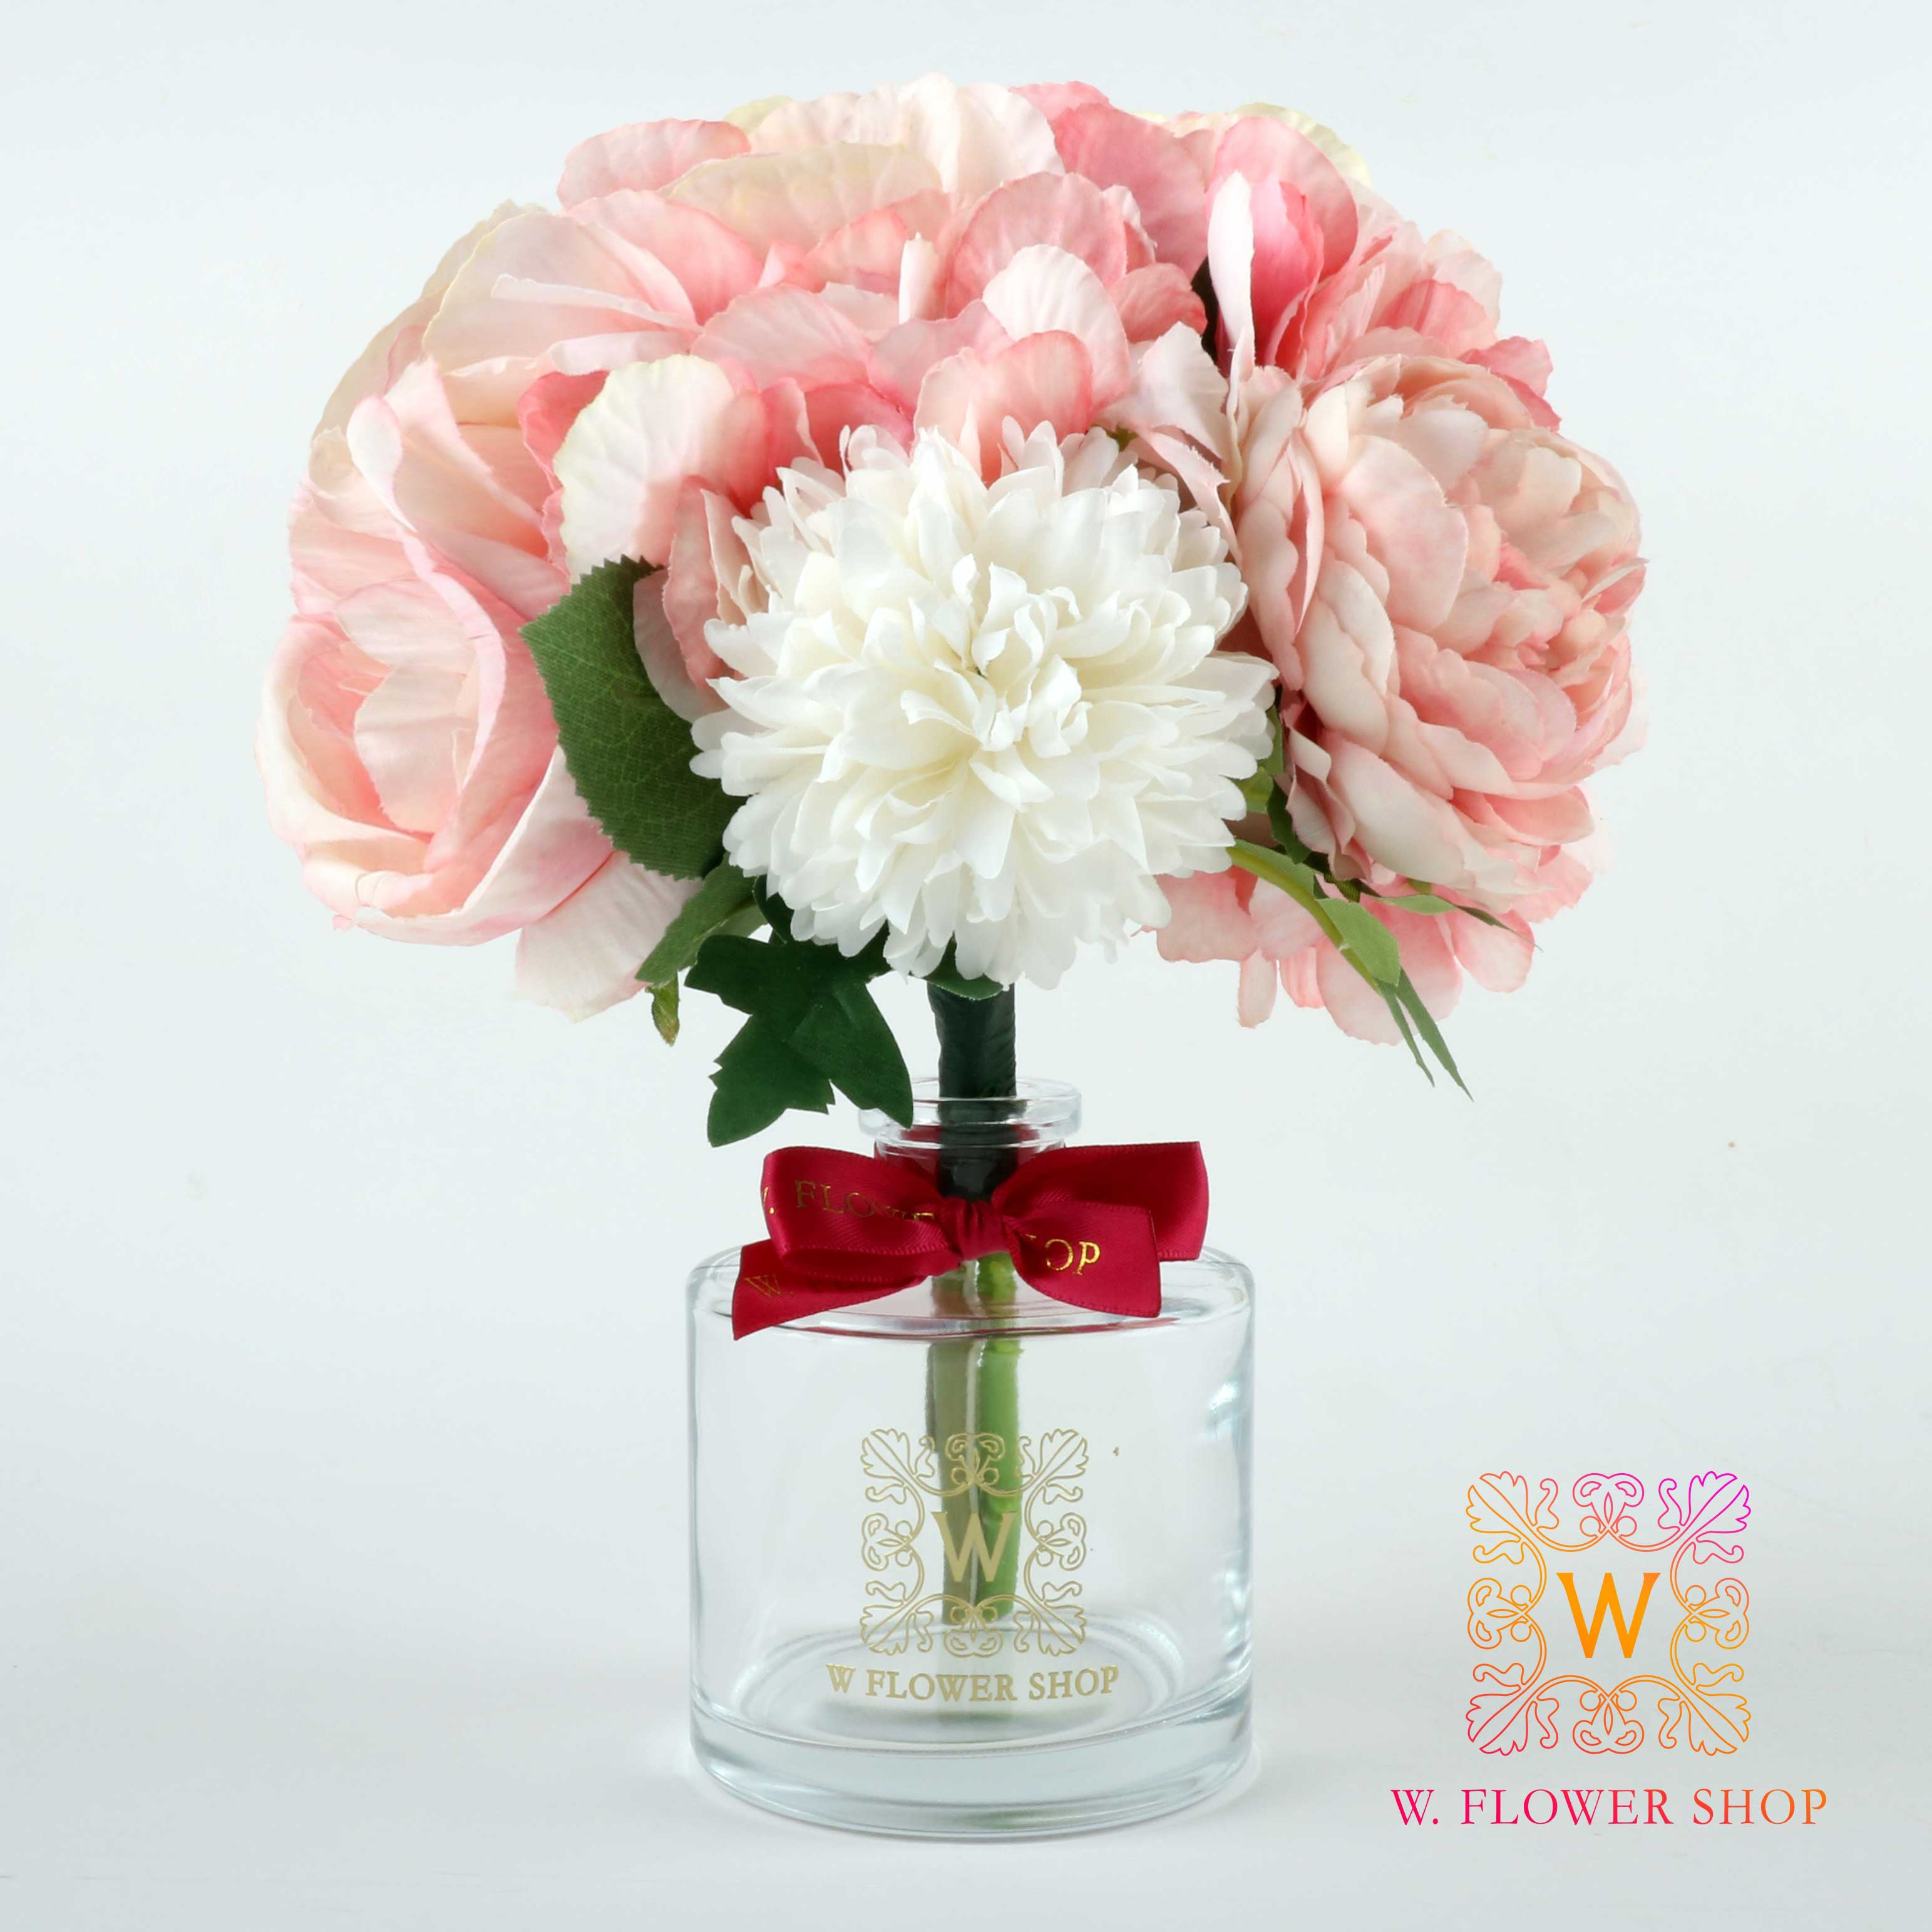 Floral Scent Diffuser - Rose